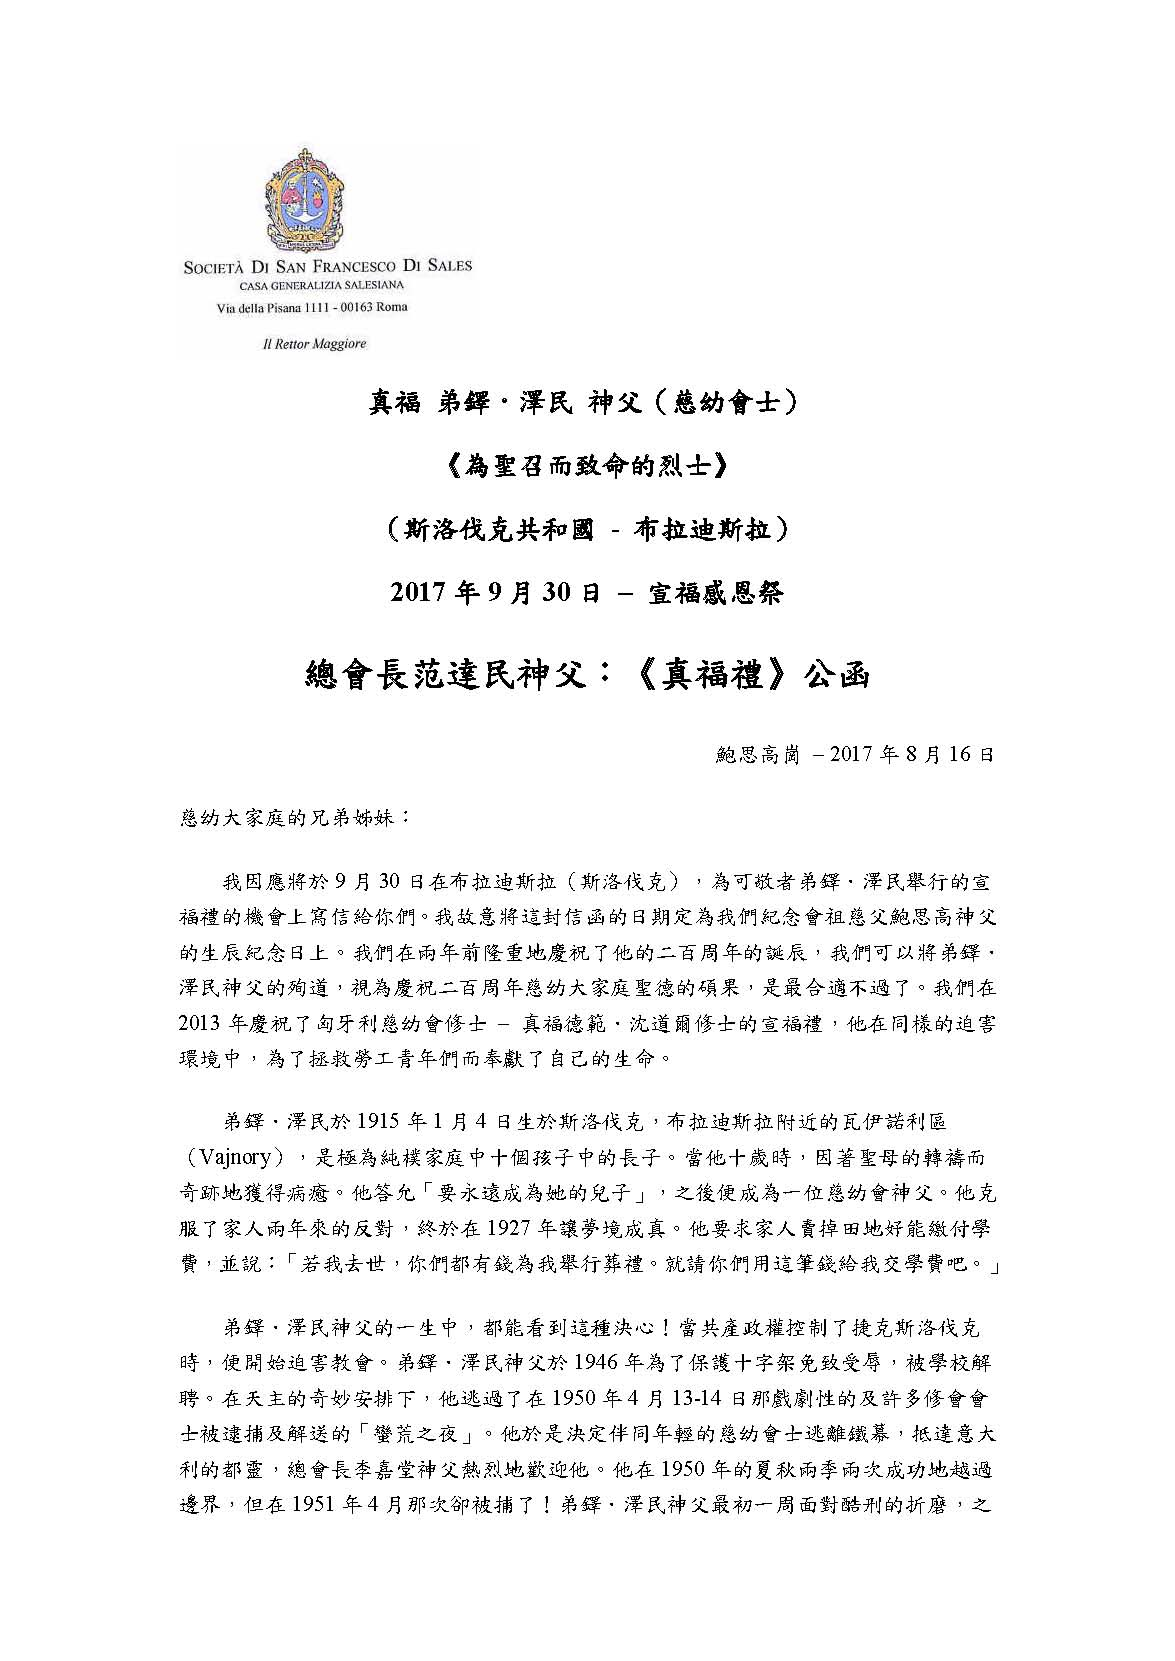 Martyr For Vocation(中英文, 真福弟鐸澤民神父)-1 Page 1